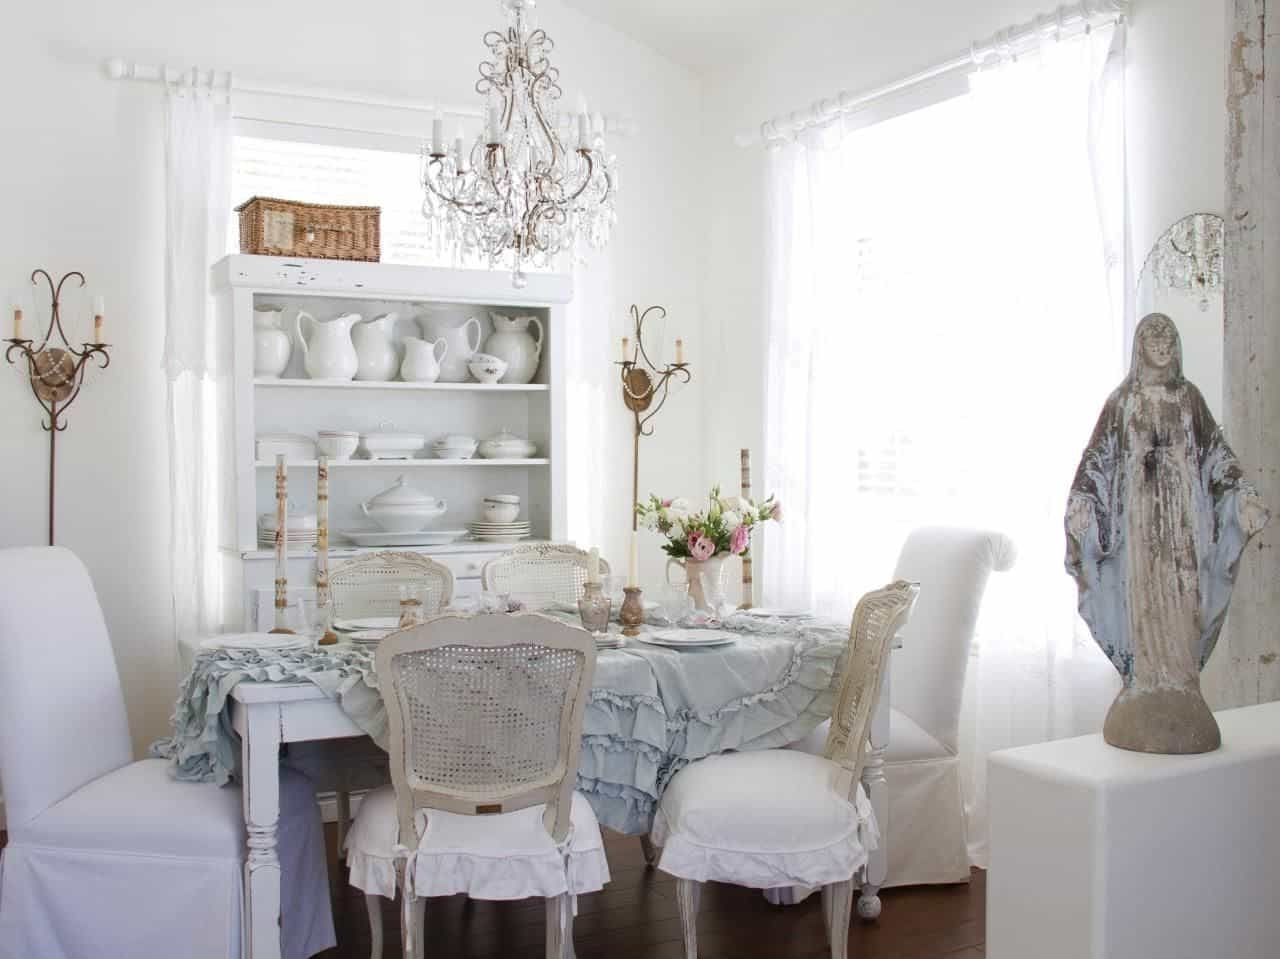 Soothing Shabby Chic Dining Room With White Walls And Small Regarding Fashionable Small Shabby Chic Chandelier (View 18 of 20)